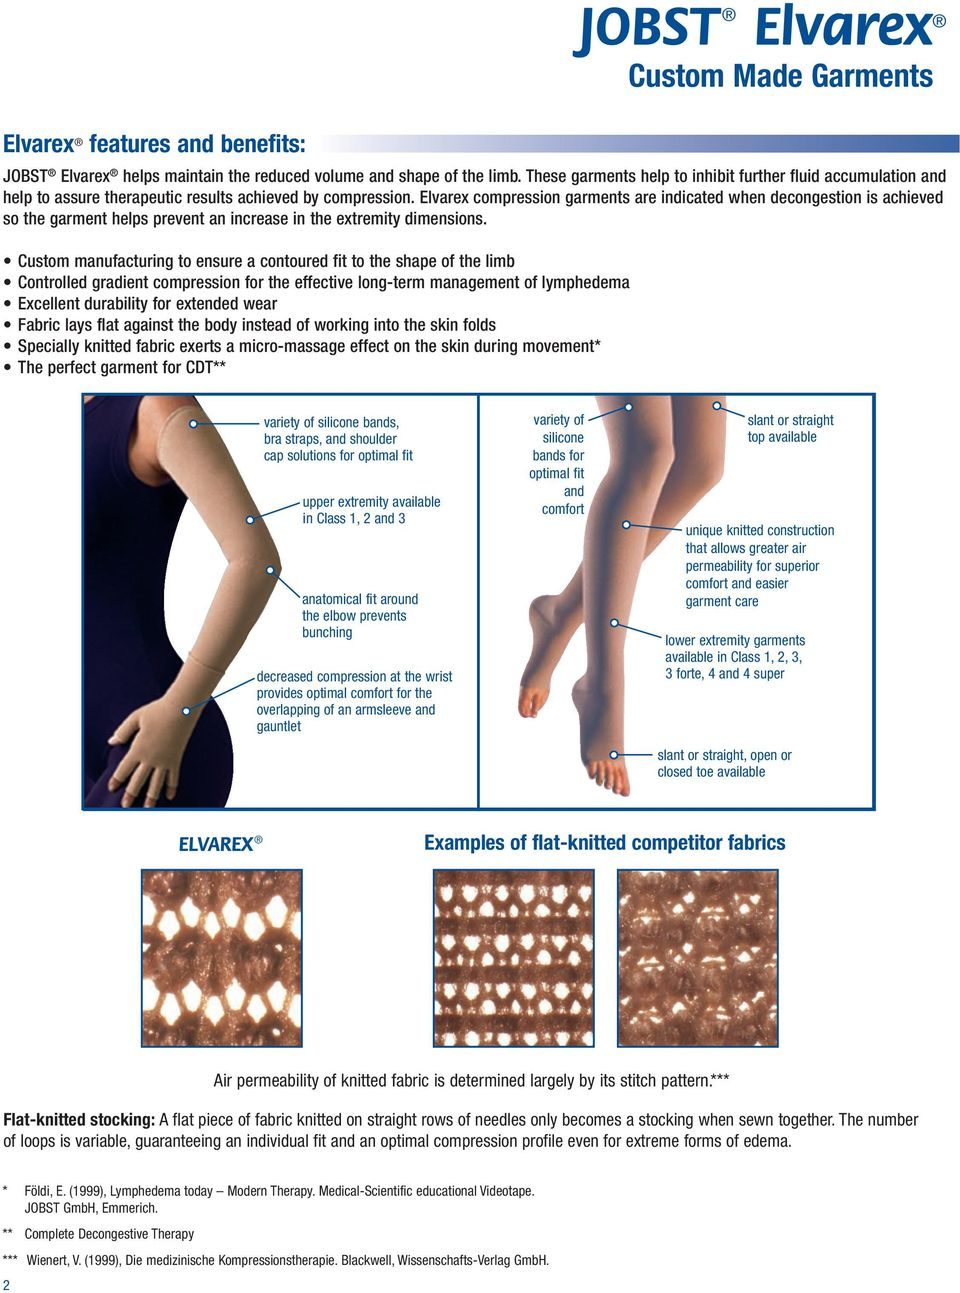 028131b0b4 Elvarex compression garments are indicated when decongestion is achieved so  the garment helps prevent an increase